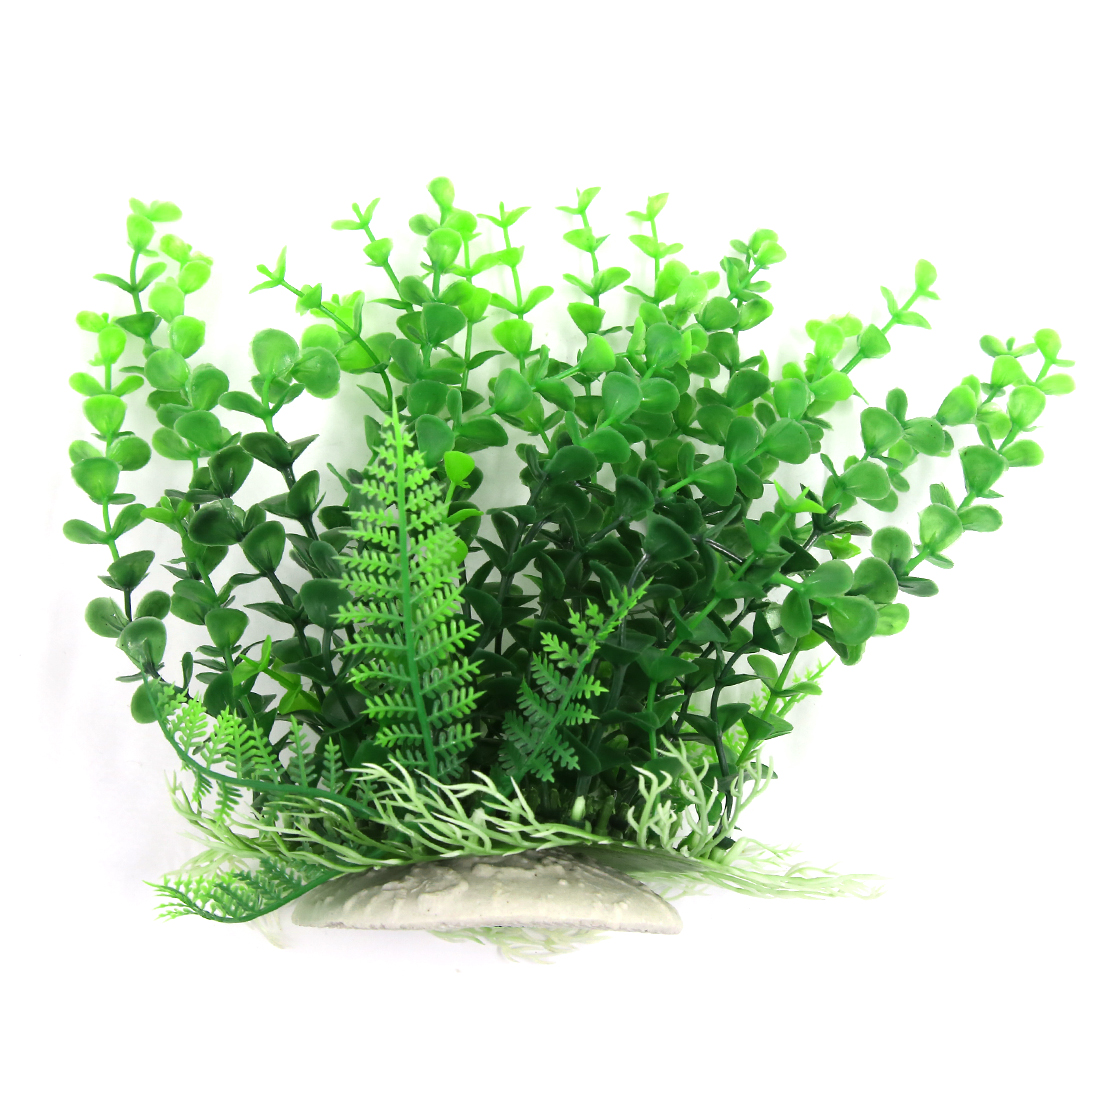 Aqua Landscape Decoration Atificial Plastic Green Plant for Betta 21cm